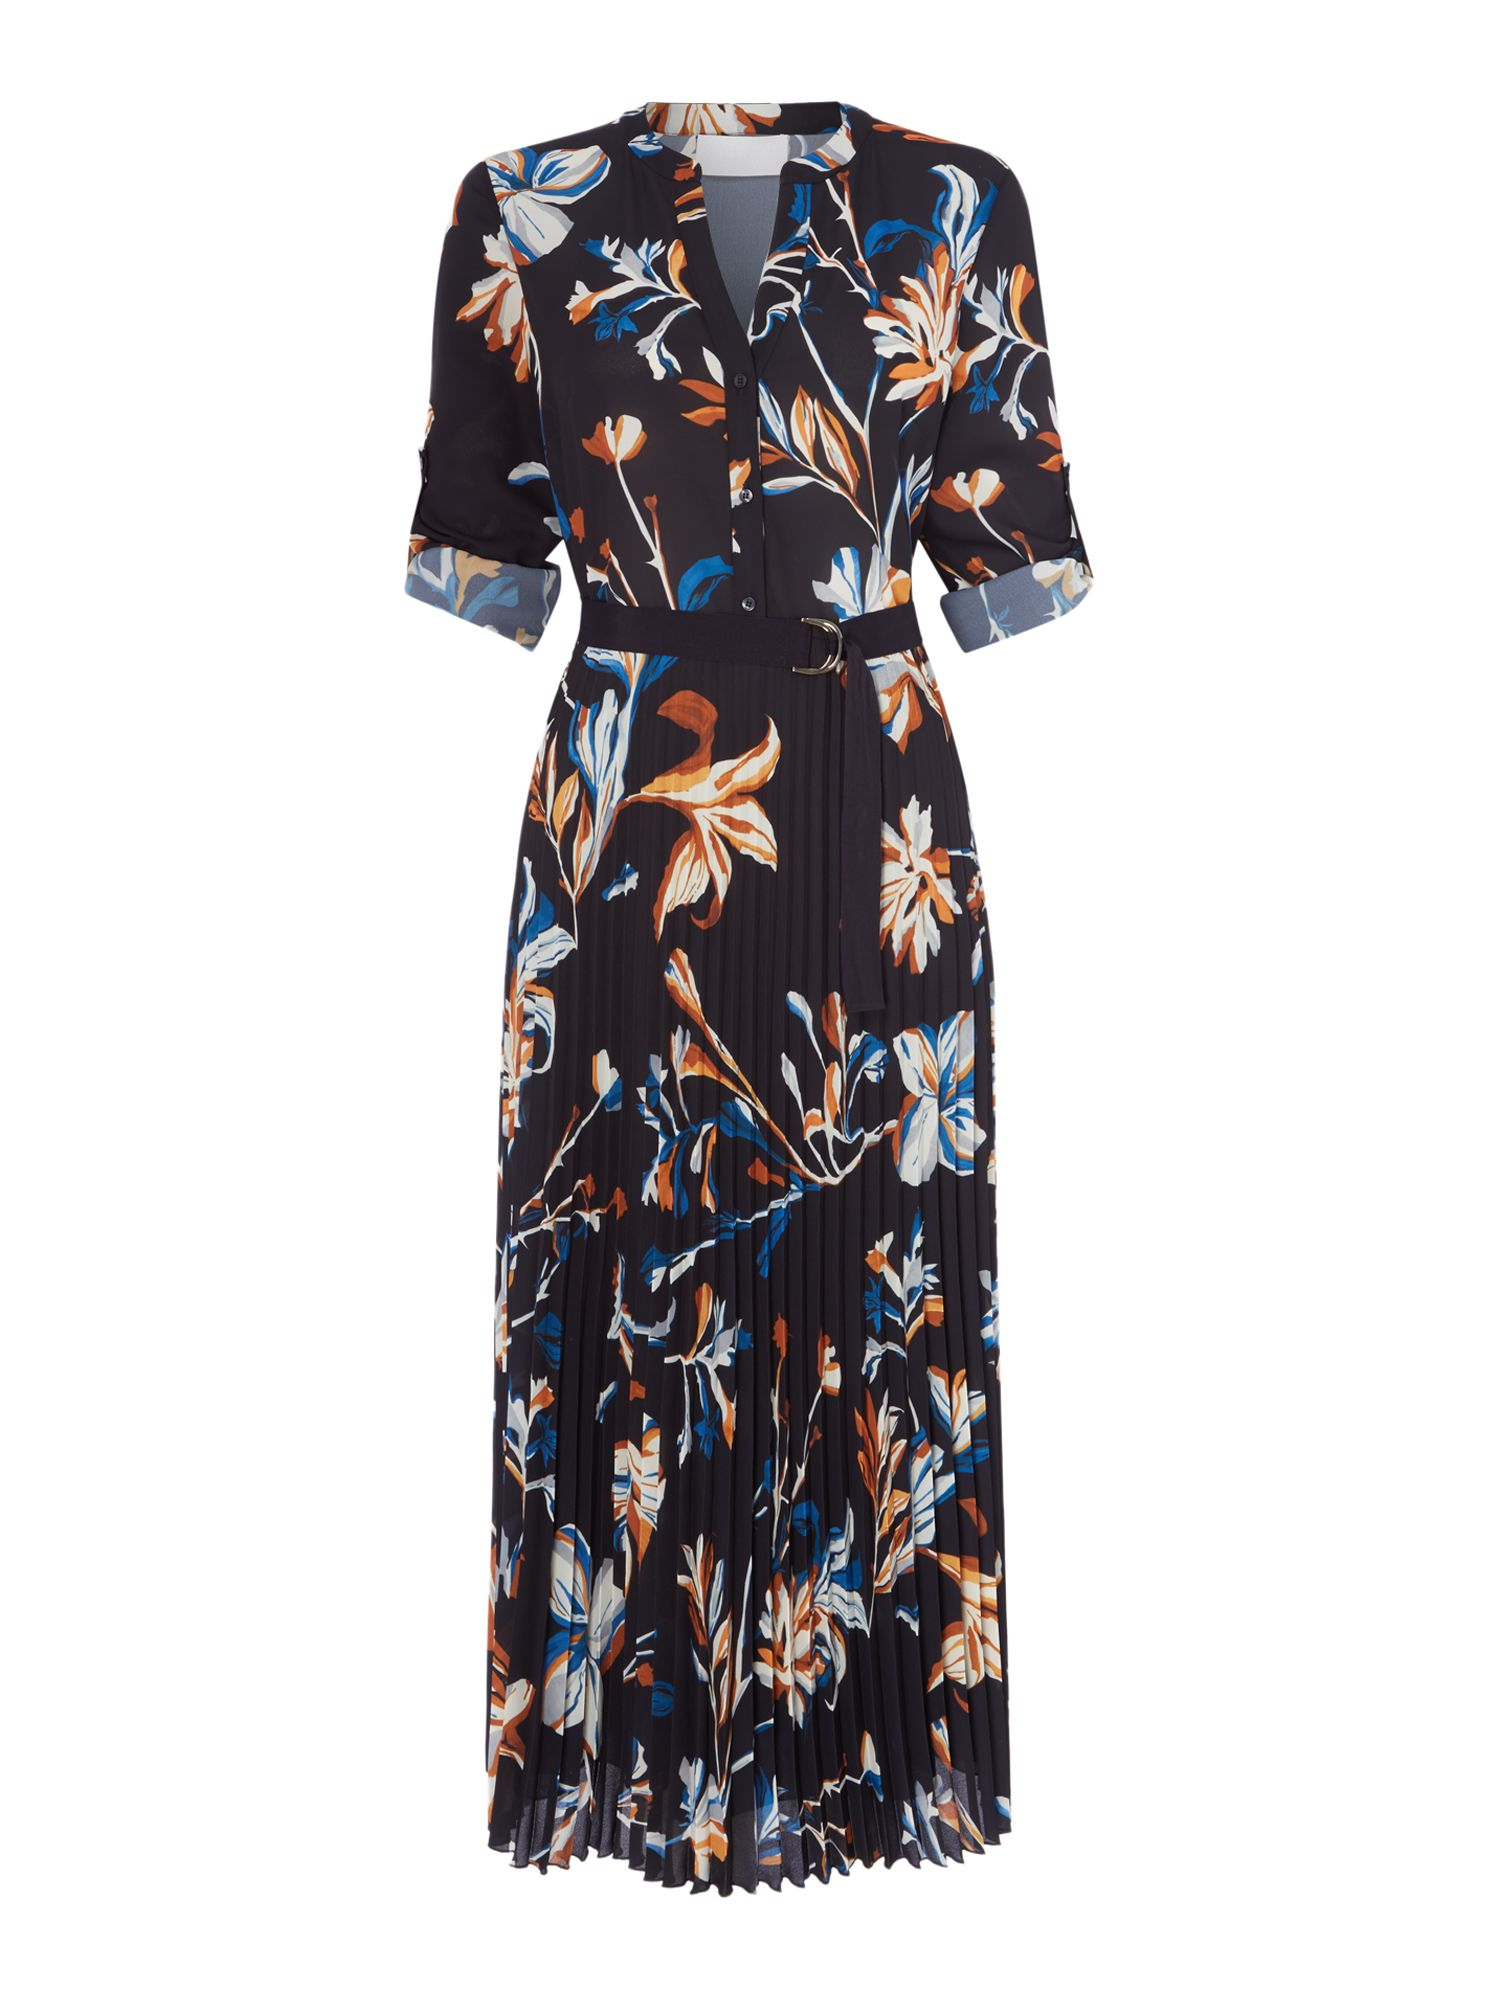 Hugo Boss Dipilisa Floral Print Dress, Blue